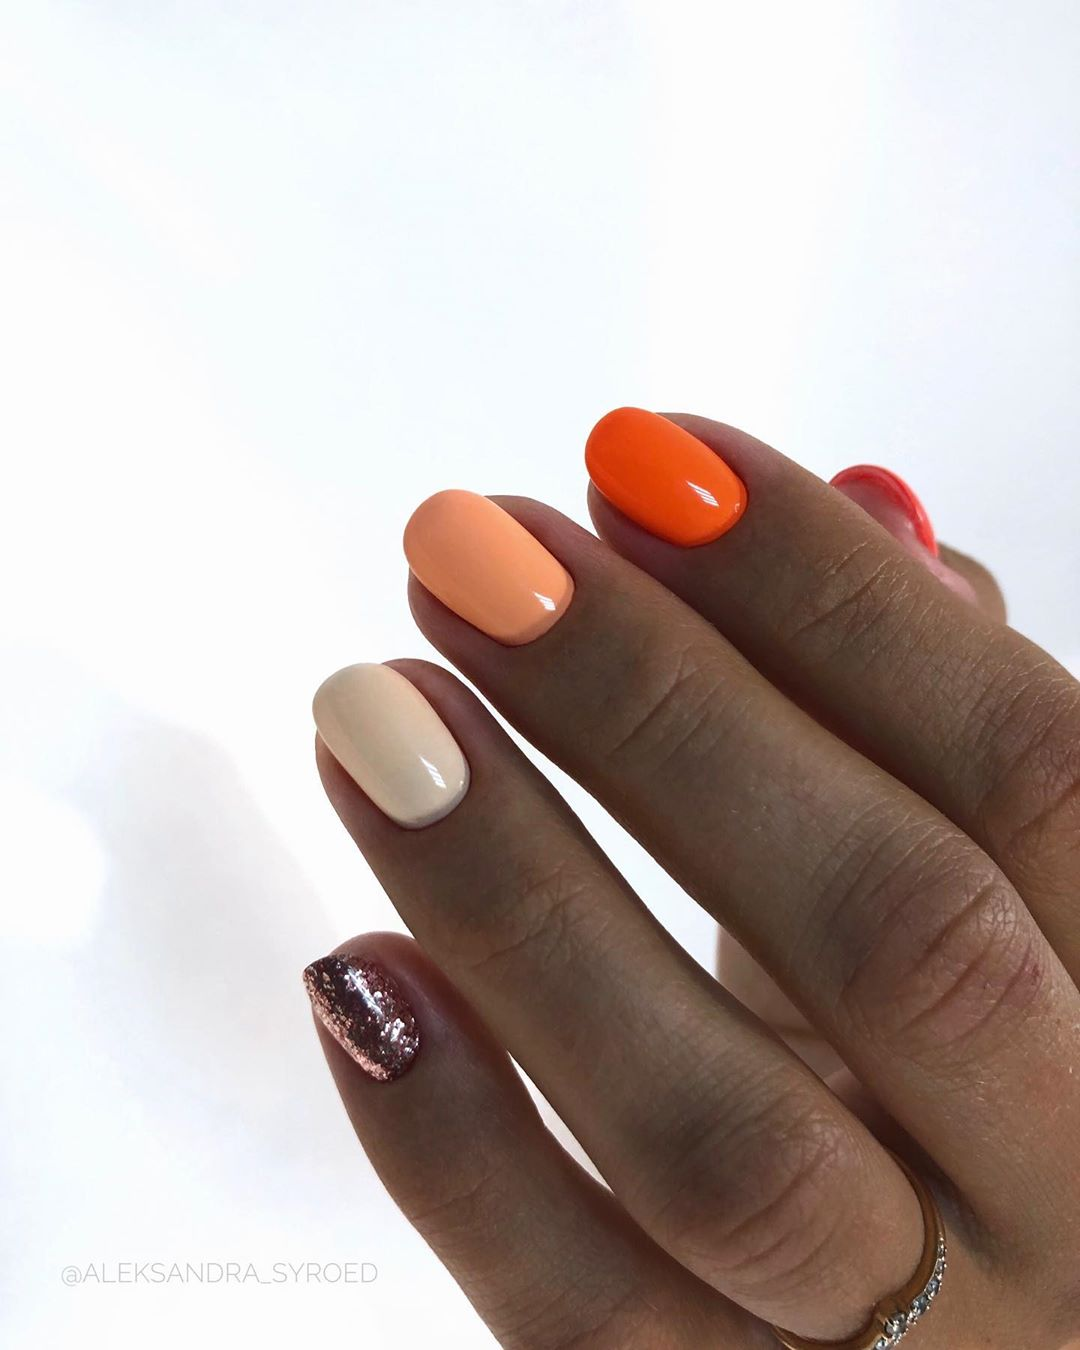 1 Short Gel Nail Designs